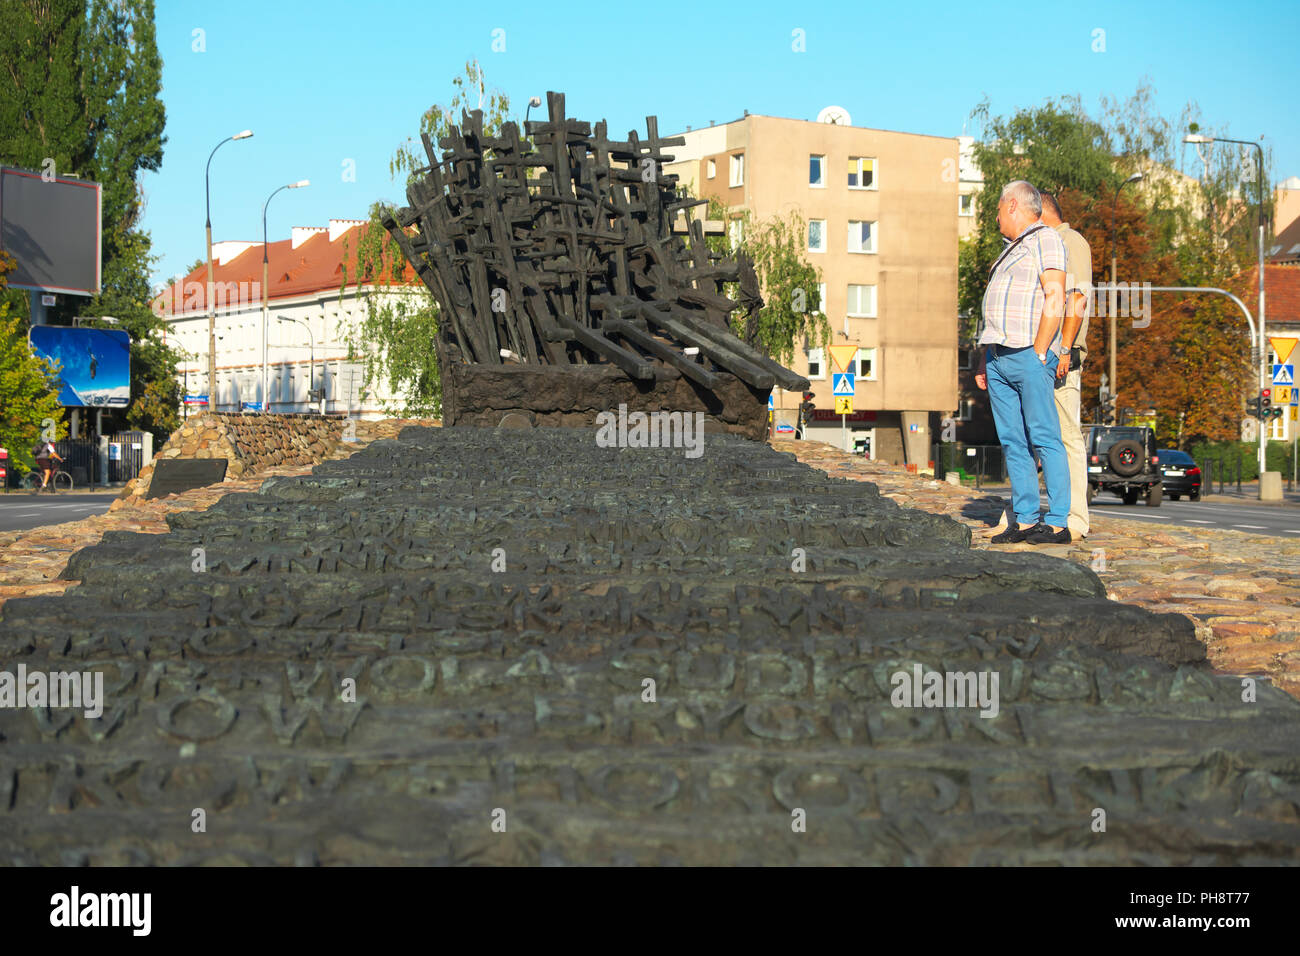 Warsaw Poland the Monument to the Fallen and Murdered in the East commemorates the invasion by USSR on 17th September 1939 and later repression - Stock Image